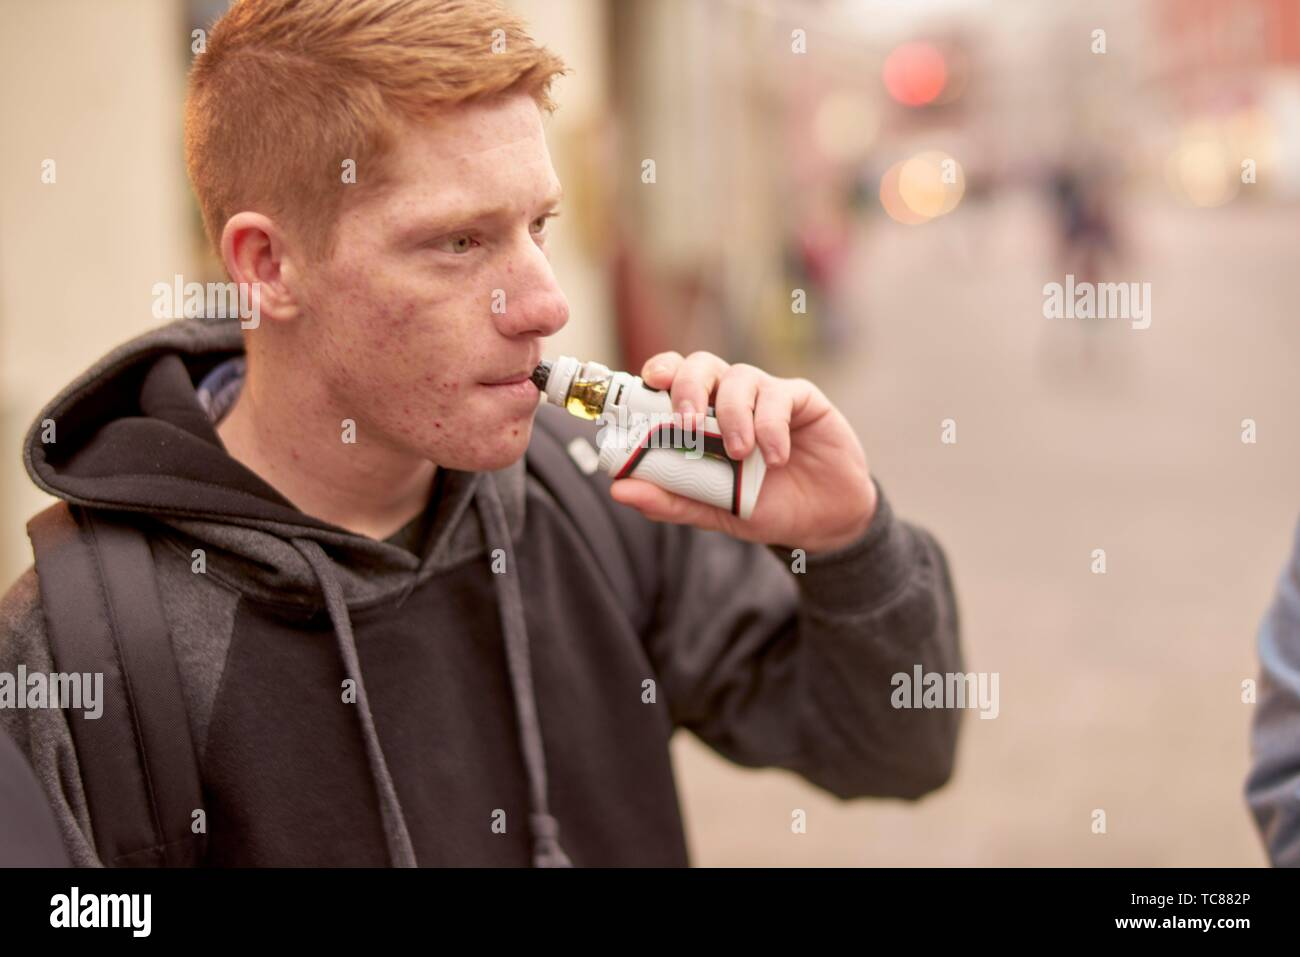 portrait of young man using electronic cigarette. - Stock Image